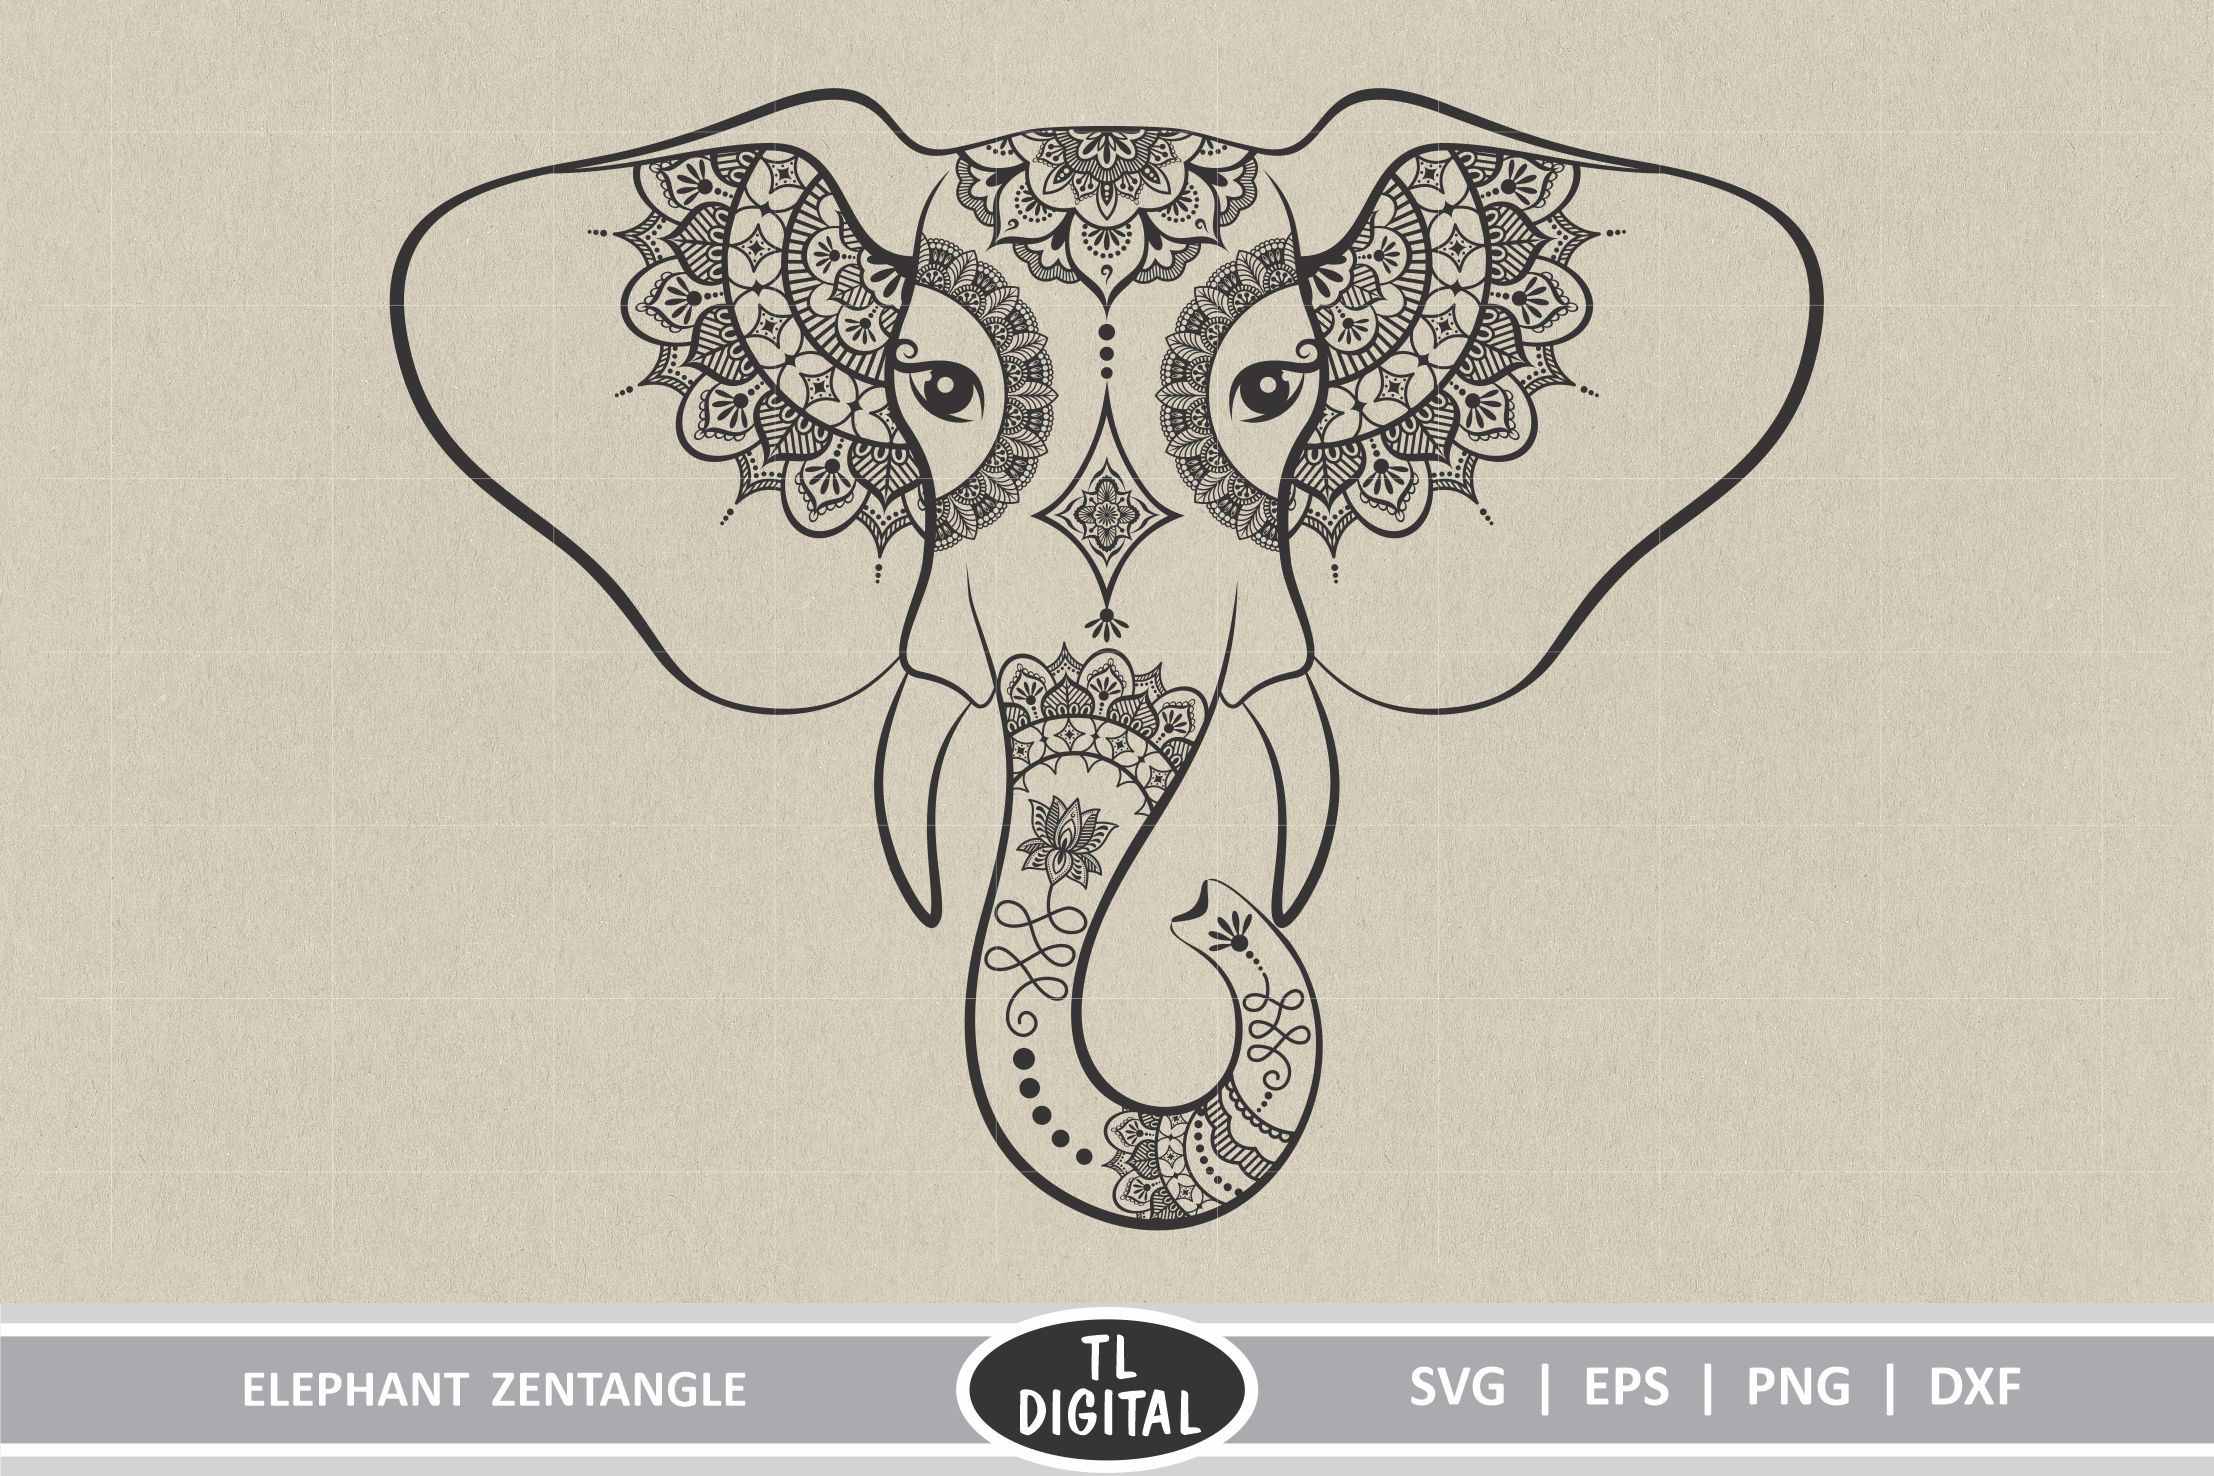 Download Free Elephant Zentangle Graphic By Tl Digital Creative Fabrica for Cricut Explore, Silhouette and other cutting machines.